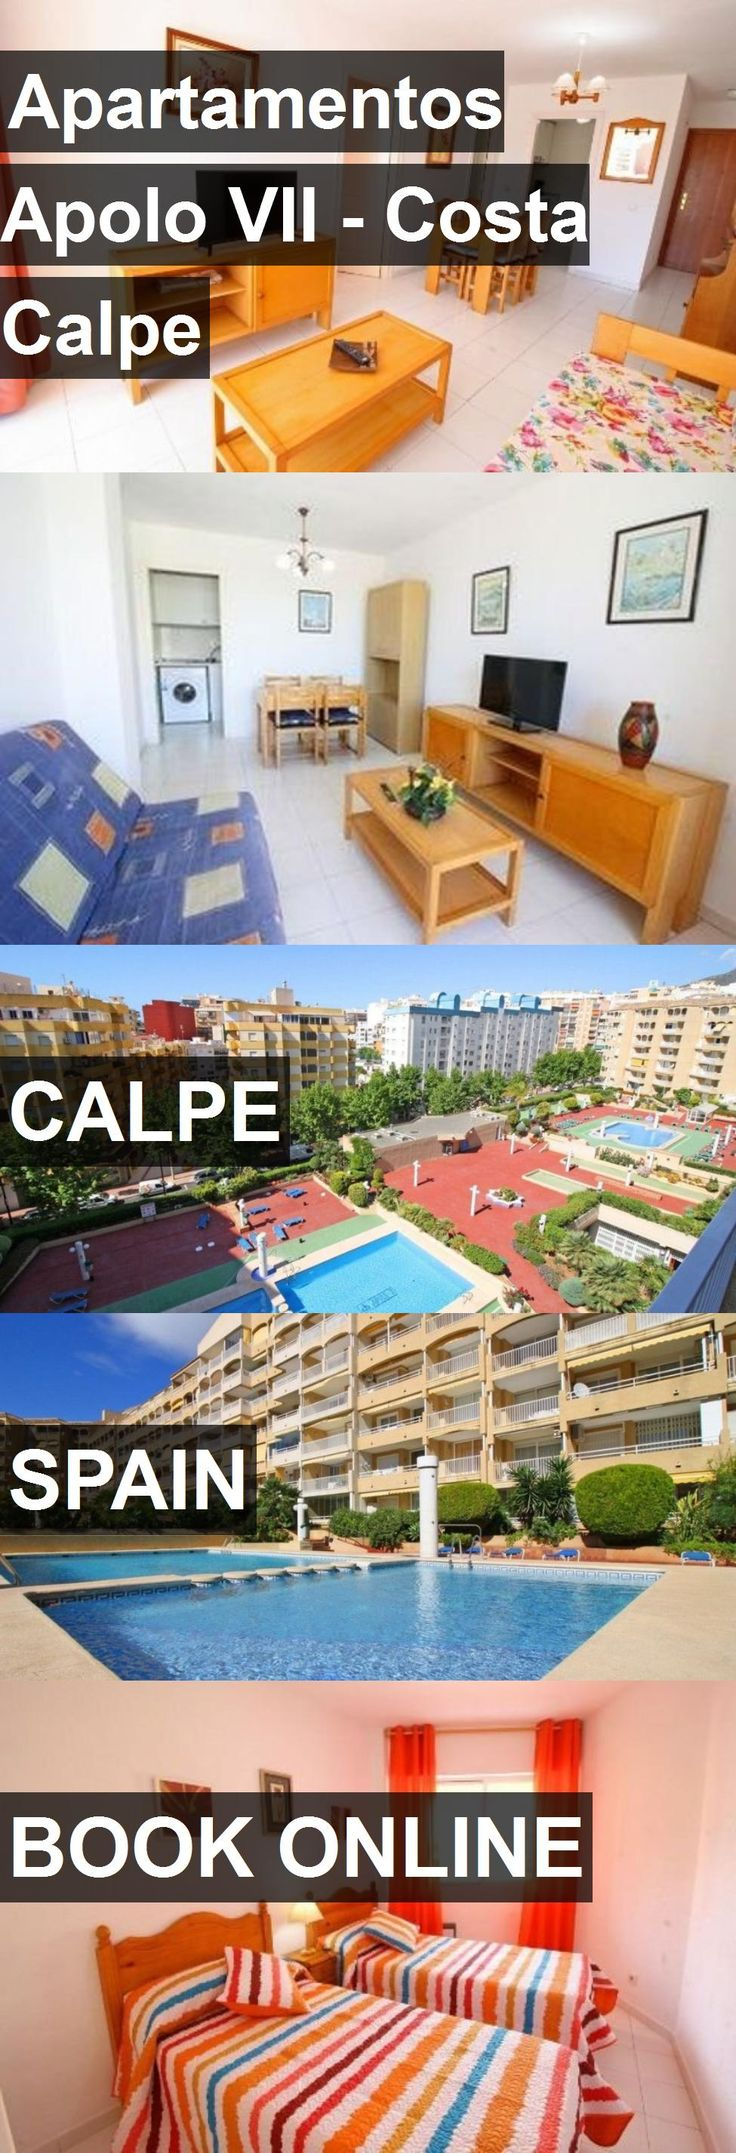 Hotel Apartamentos Apolo VII - Costa Calpe in Calpe, Spain. For more information, photos, reviews and best prices please follow the link. #Spain #Calpe #travel #vacation #hotel